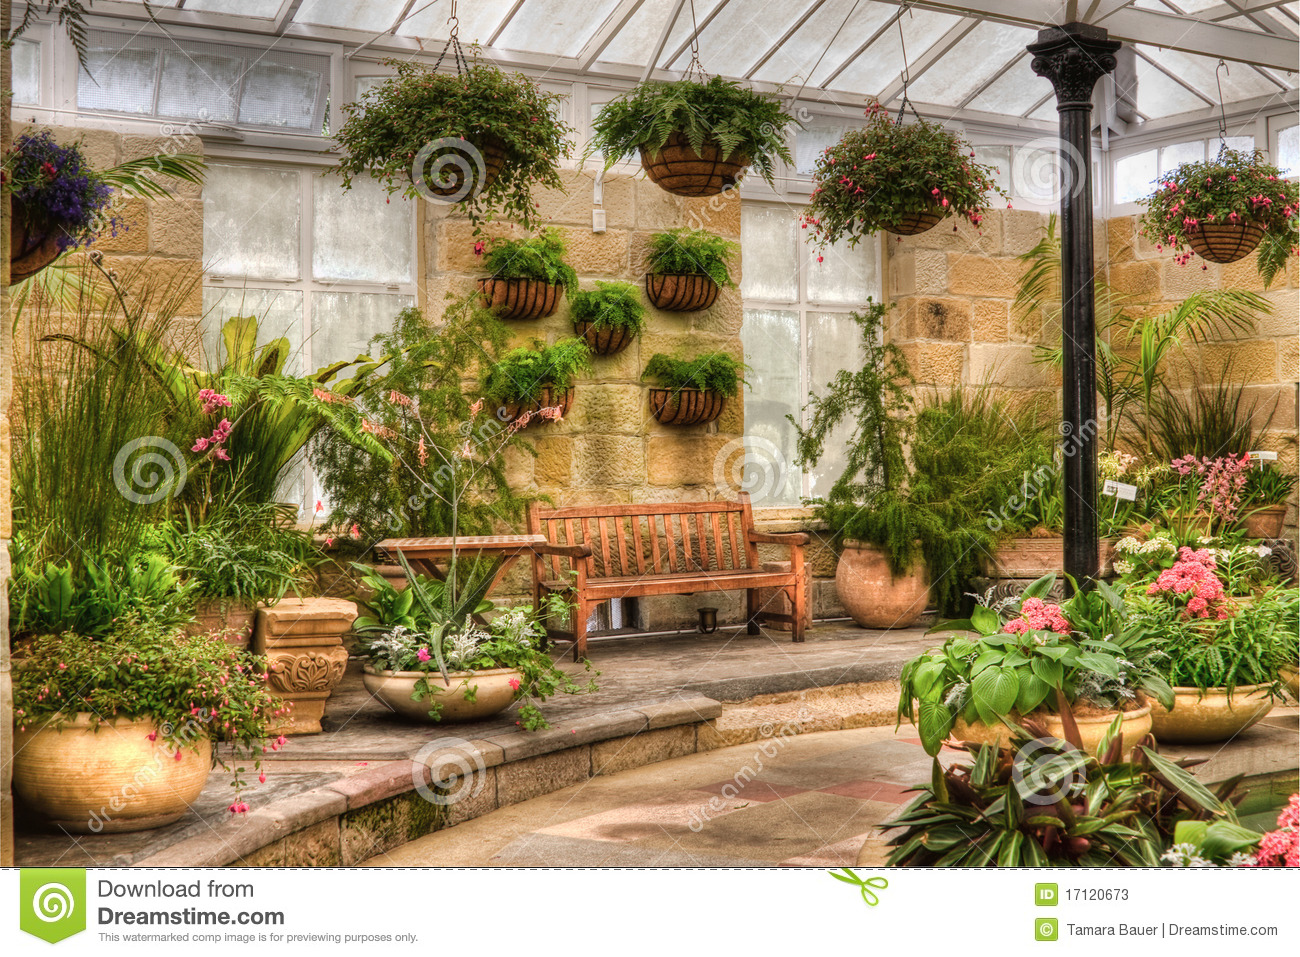 Scenic Indoor Garden Area Stock Photos - Image: 17120673